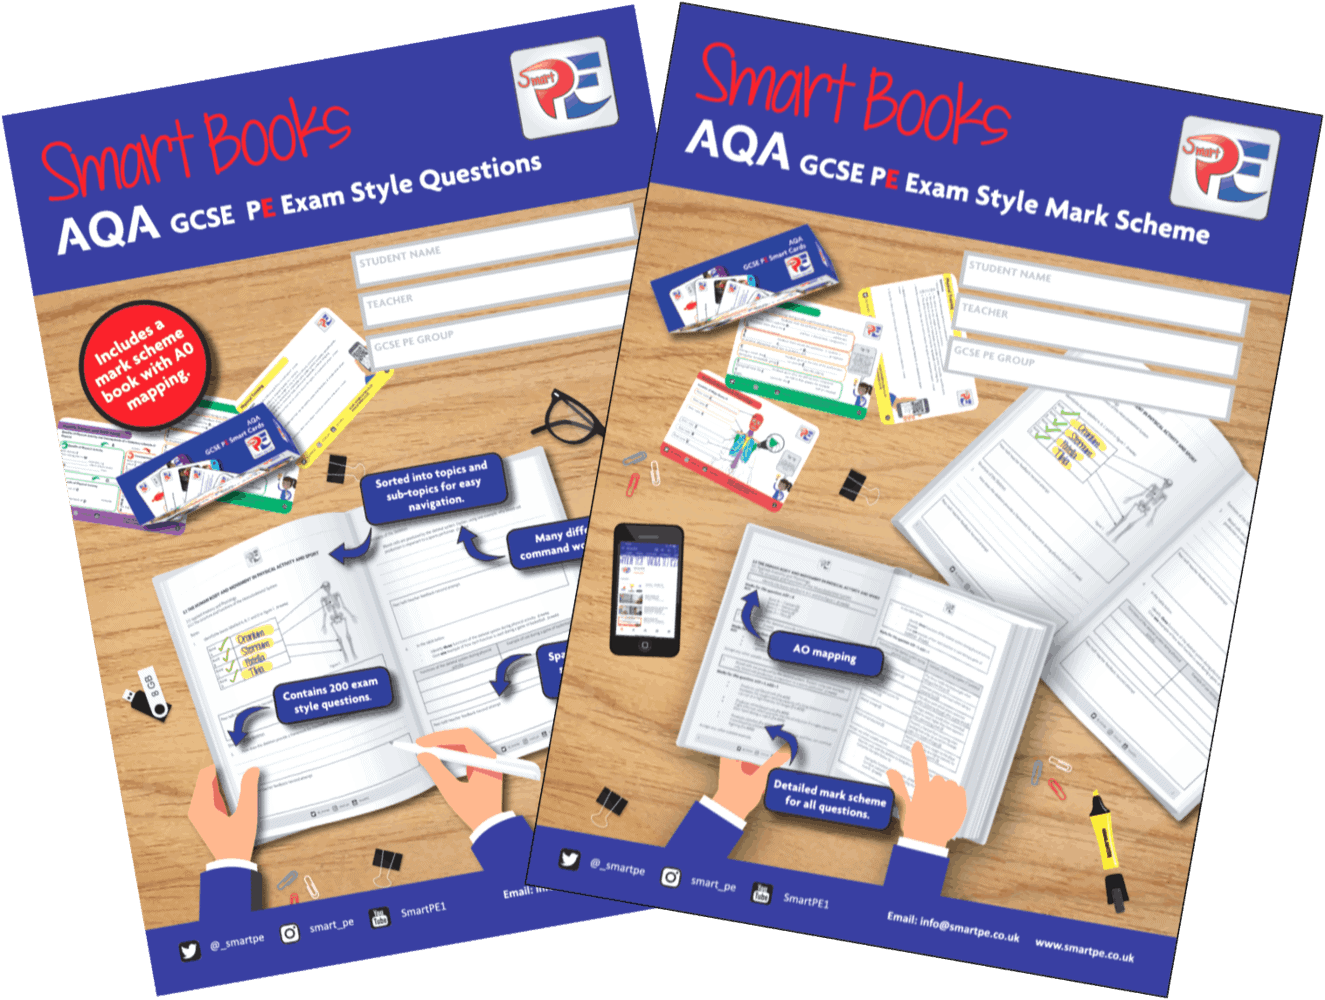 AQA Smart Books - SmartPE.co.uk | A Smarter Way To Learn @_SmartPE [Affiliate]